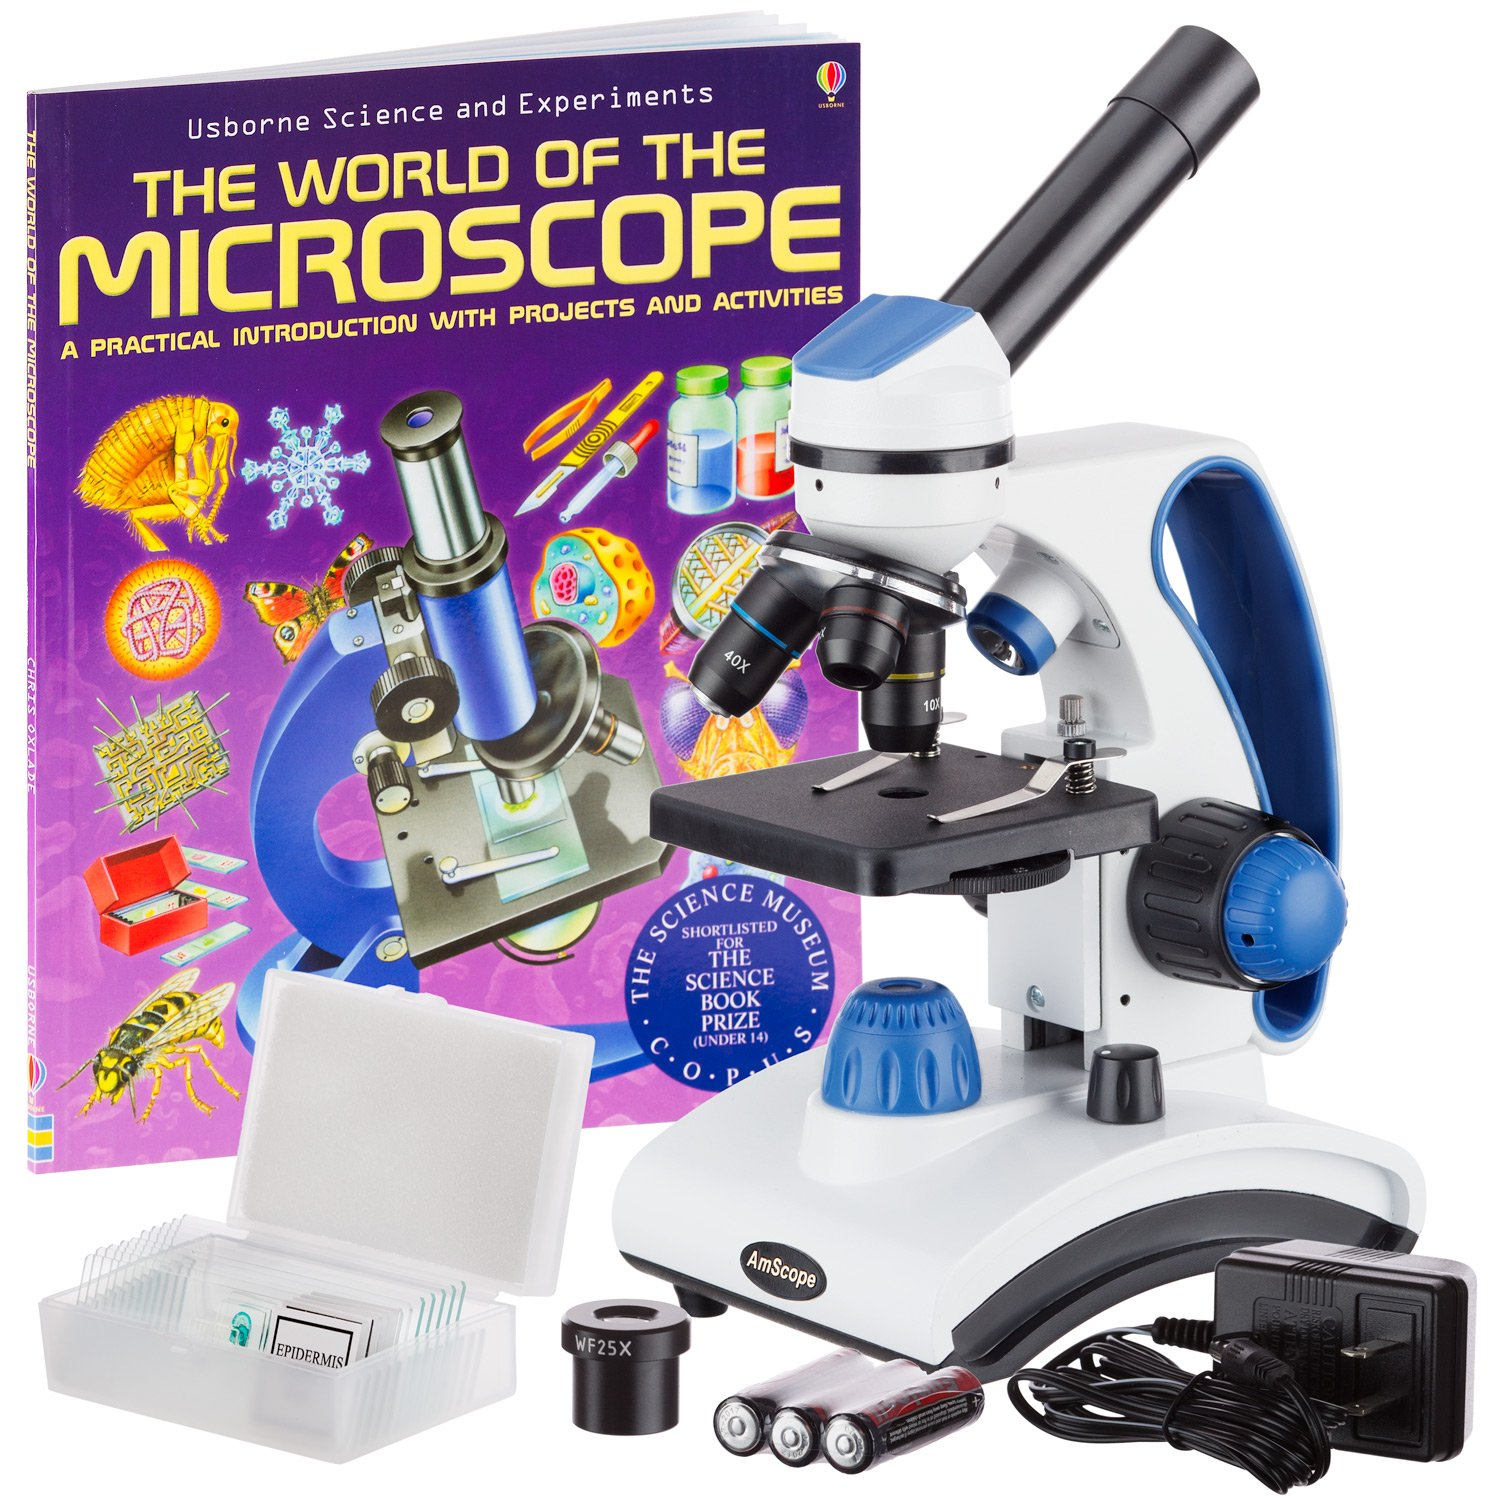 AmScope ''Awarded 2018 Best Students and Kids Microscope Kit'' - 40X-1000X Dual Light All Metal Microscope with Slides and Microscope Book by AmScope